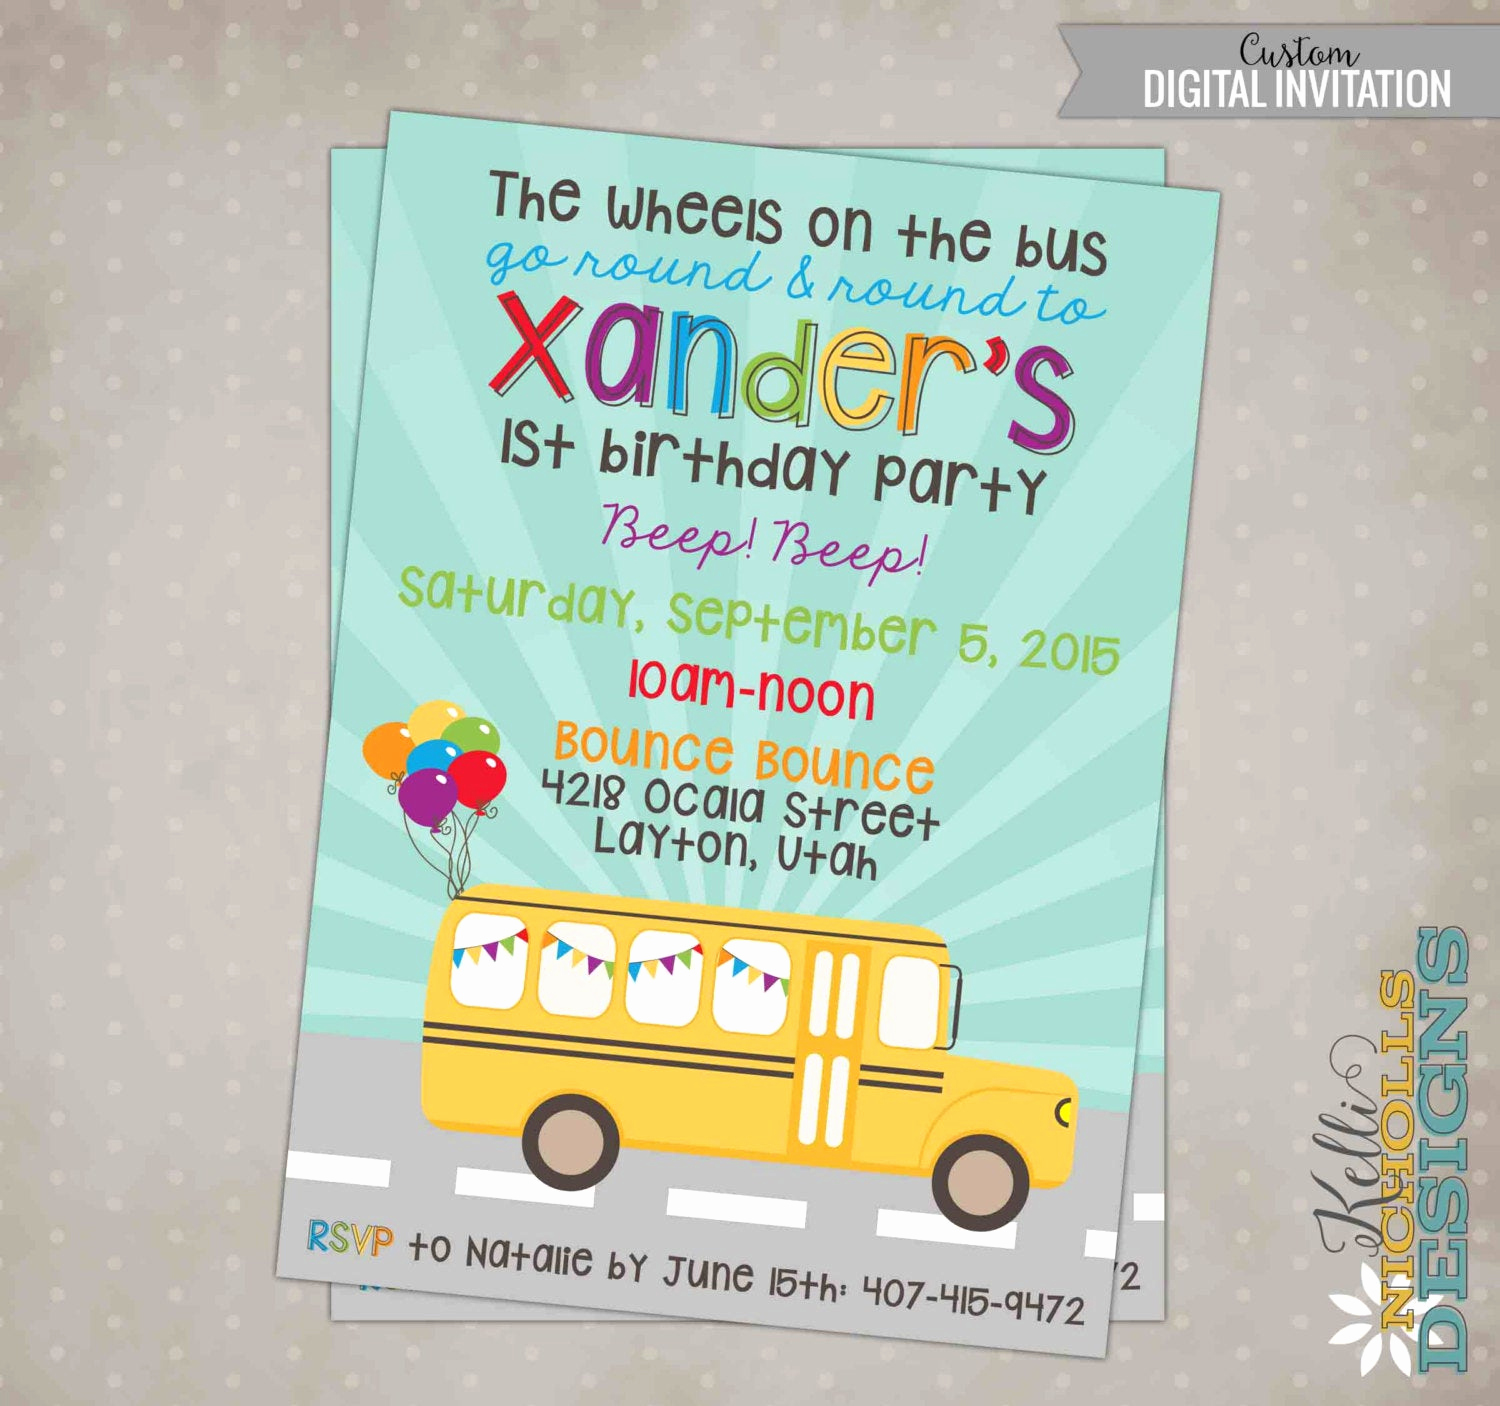 Party Bus Invitation Wording Awesome Wheels On the Bus Birthday Party Invitation Custom School Bus